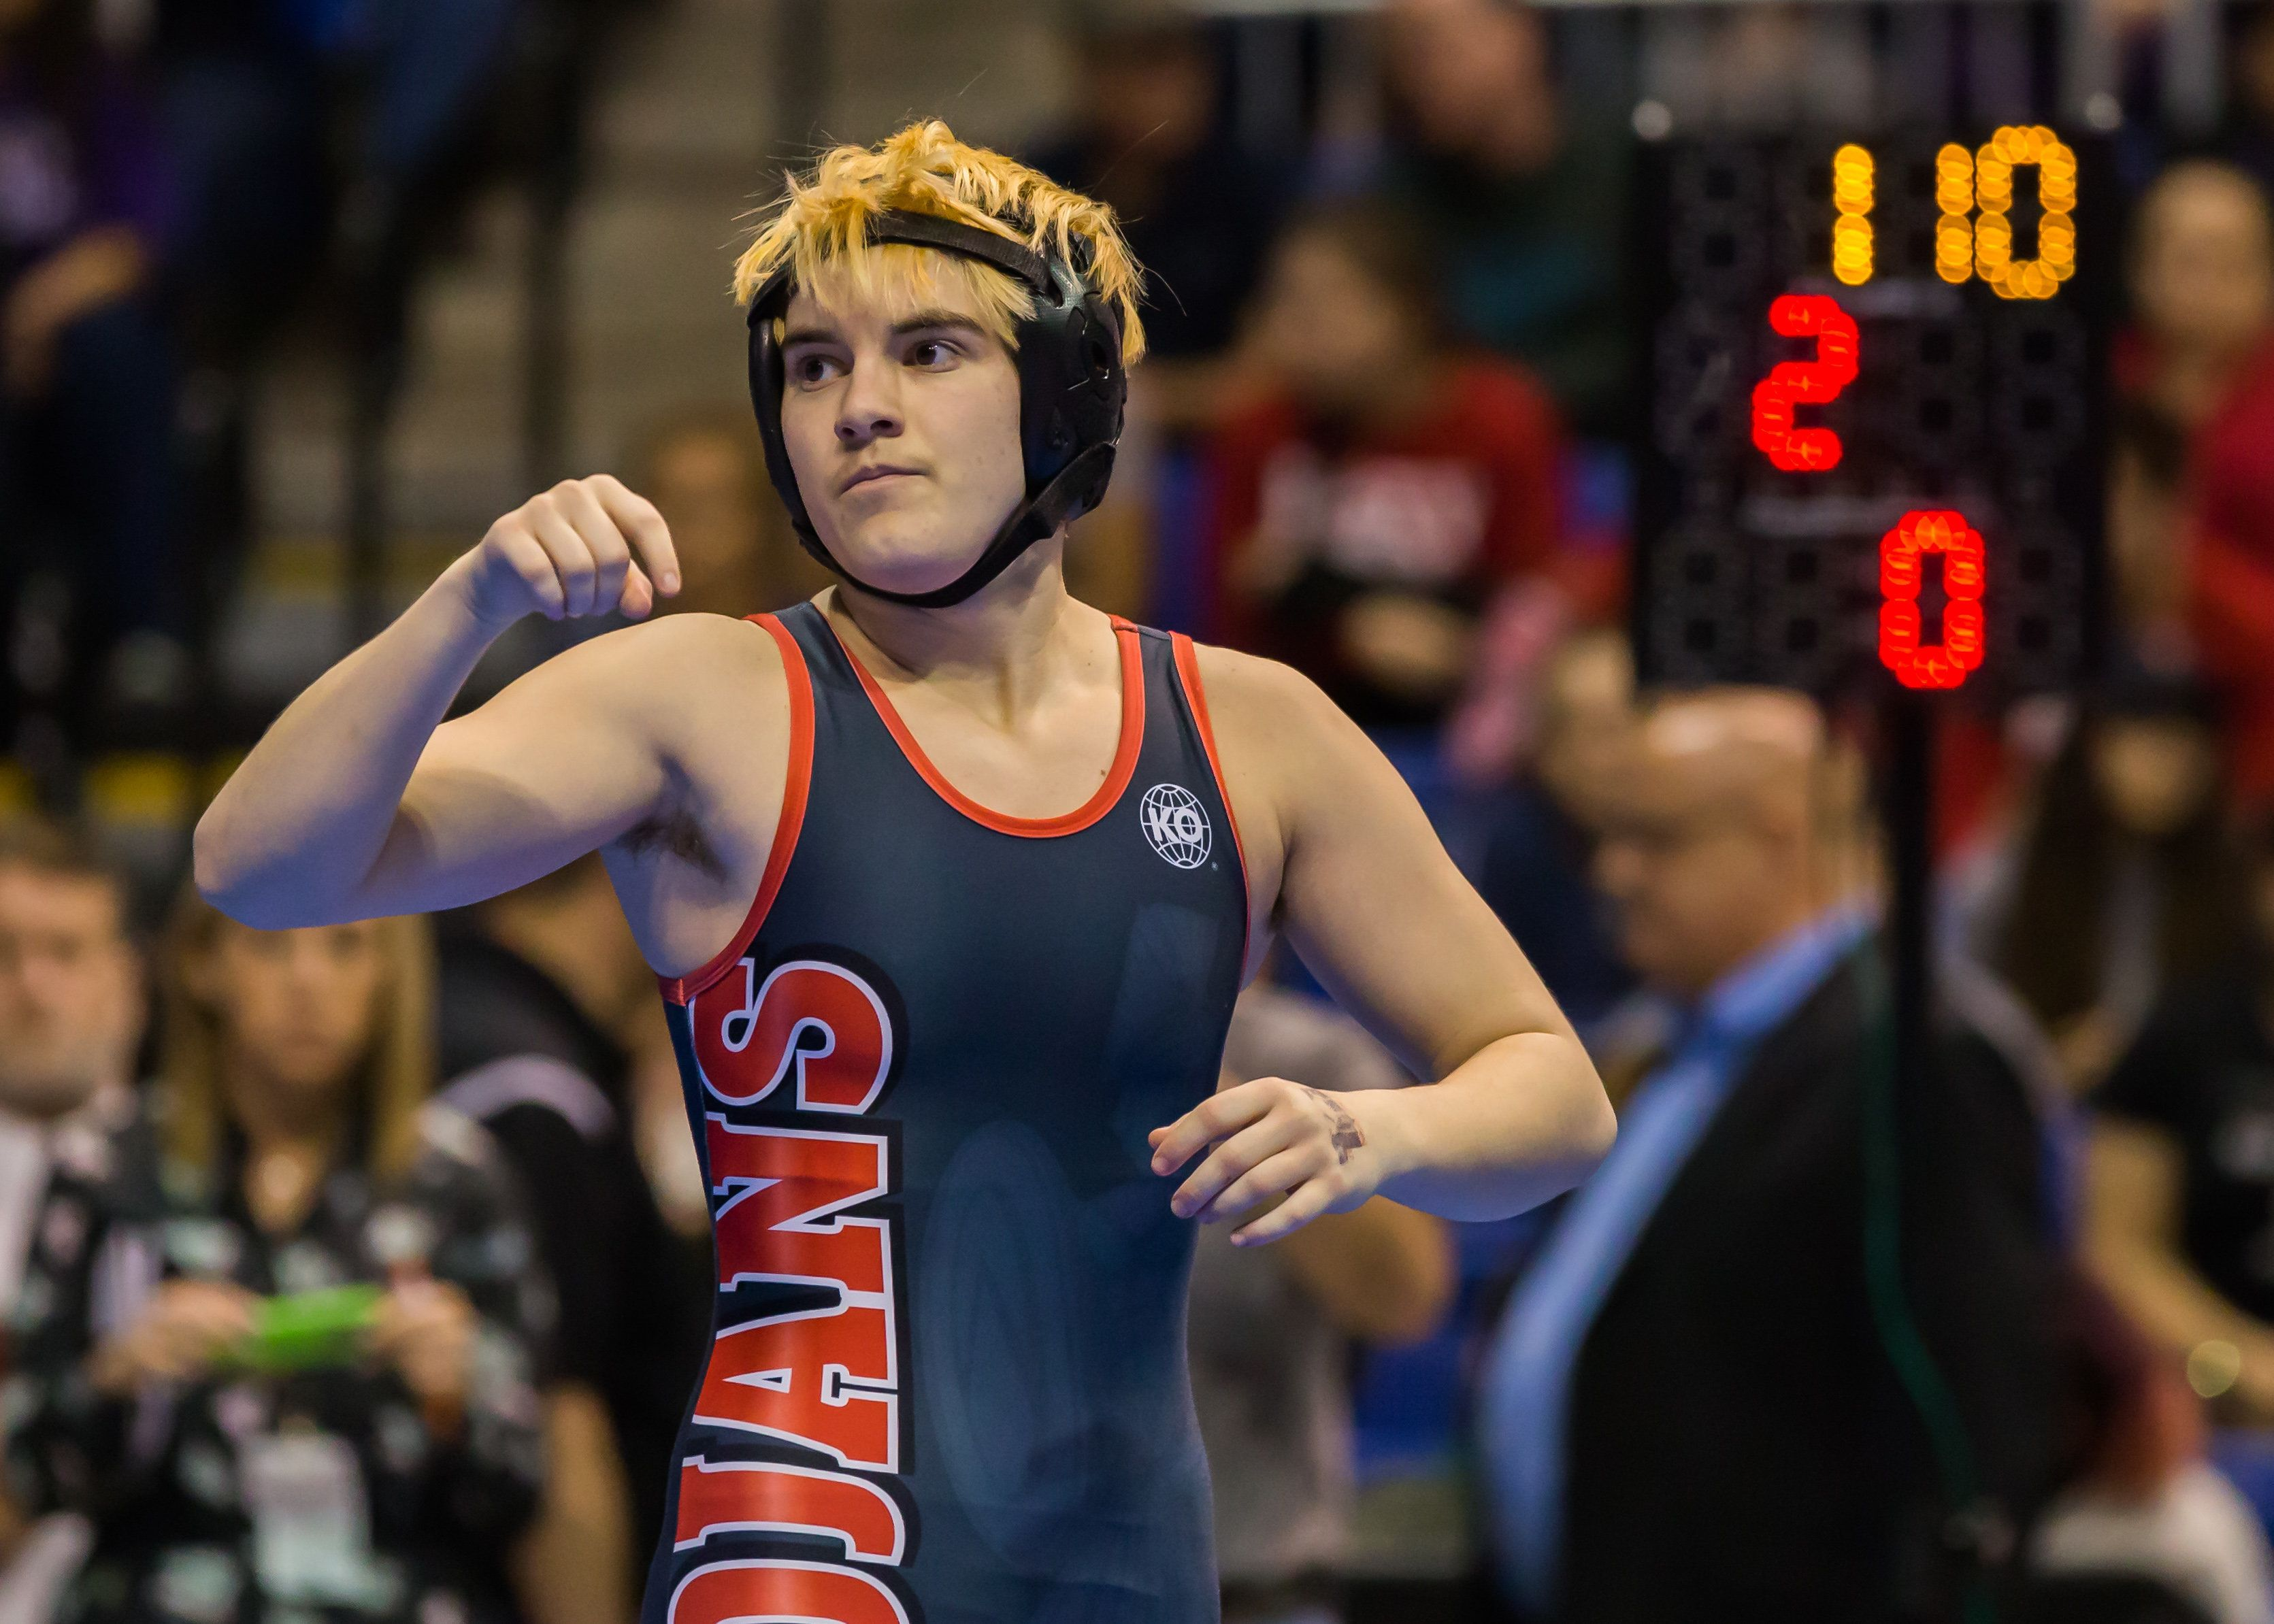 CYPRESS, TX - FEBRUARY 25:  Trinity junior Mack Beggs waits for a signal from the referee in the final round of the 6A Girls 110 Weight Class match during the Texas Wrestling State Tournament on February 25, 2017 at Berry Center in Cypress, Texas.  (Photo by Leslie Plaza Johnson/Icon Sportswire via Getty Images)